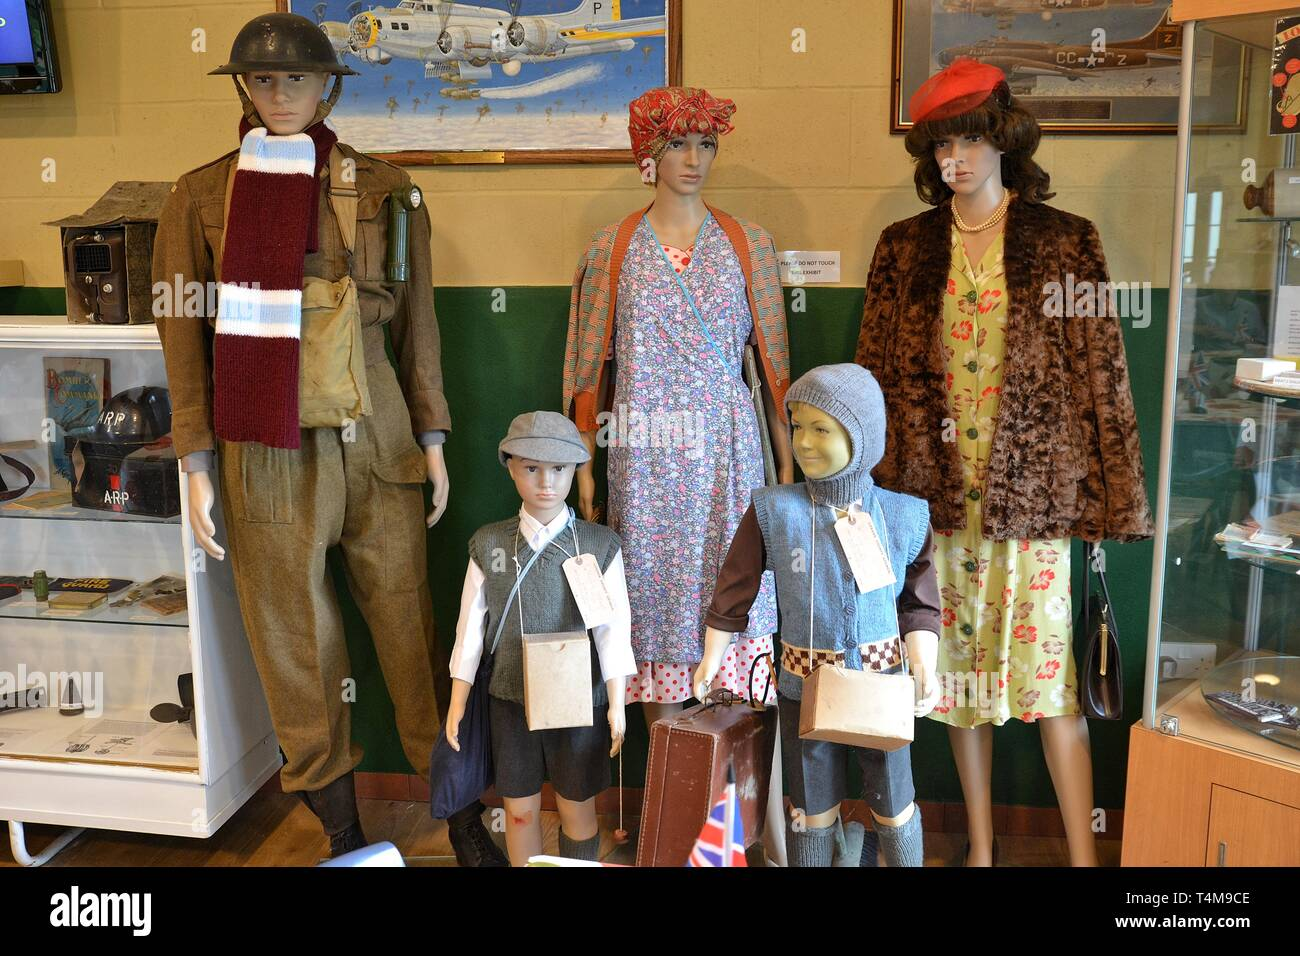 1940s family with evacuees in the Home Front Exhibition at the Parham Airfield Museum, Framlingham, Suffolk, England, UK - Stock Image